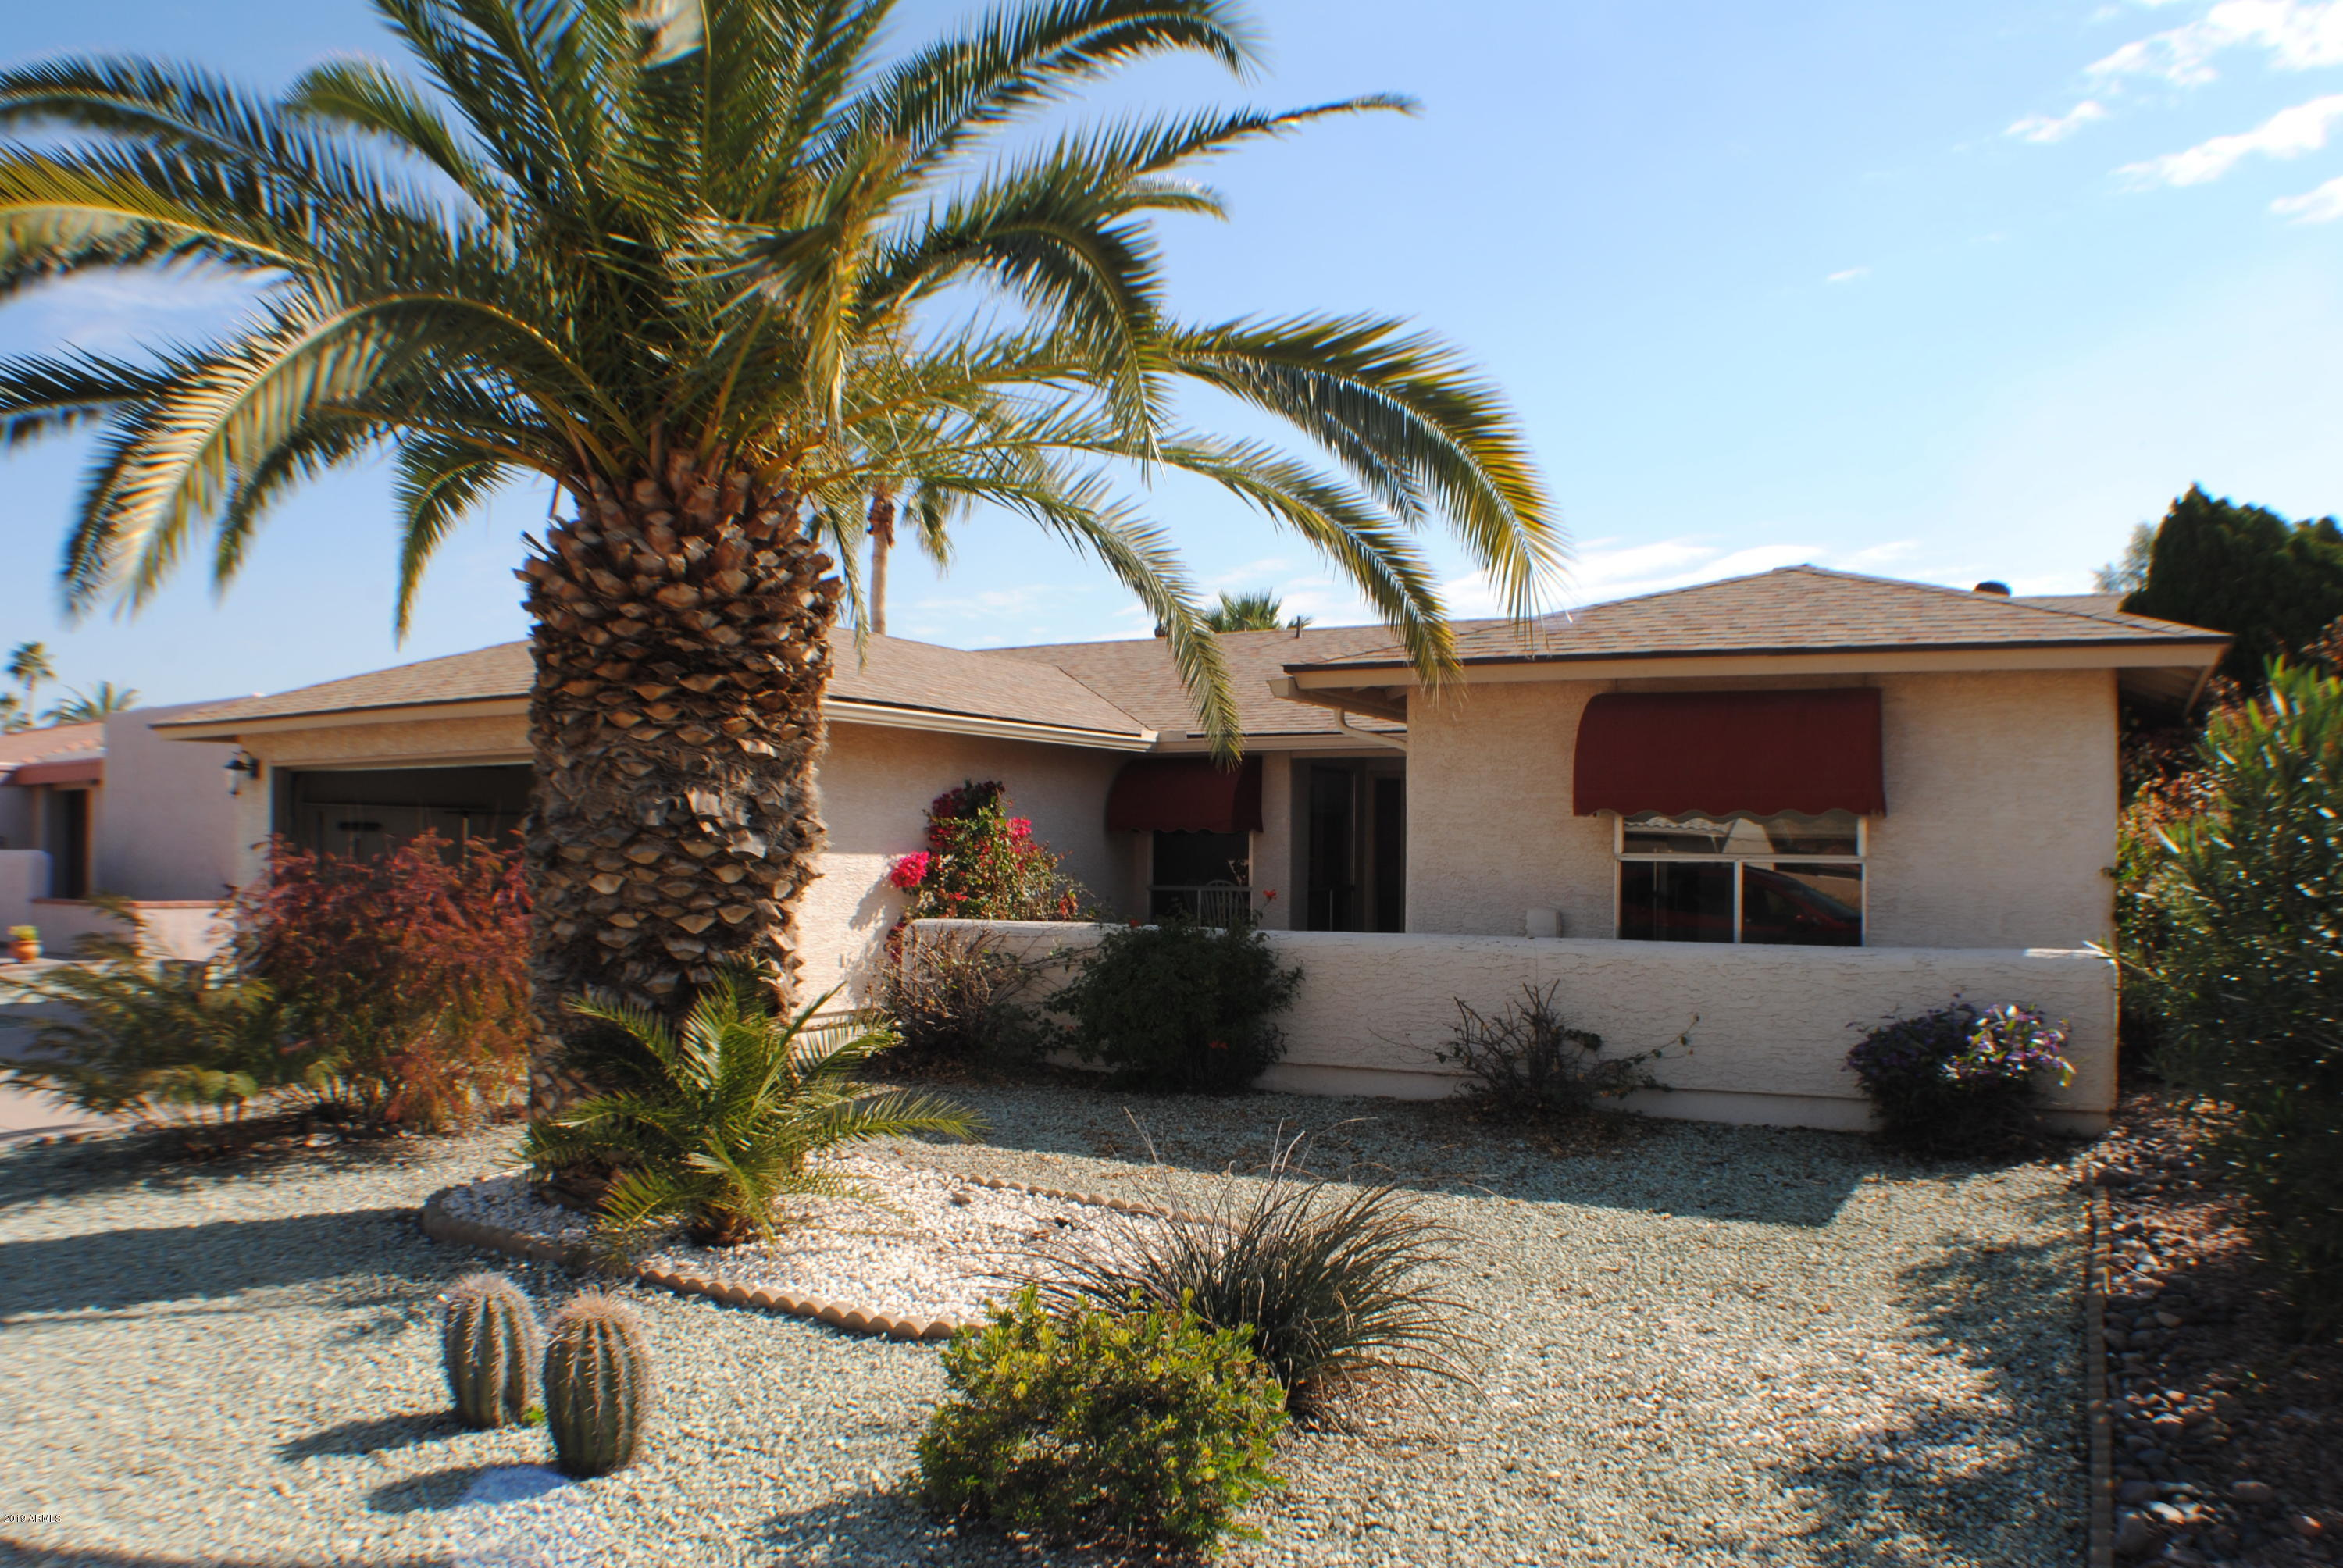 Photo for 25849 S Brentwood Drive, Sun Lakes, AZ 85248 (MLS # 5888131)